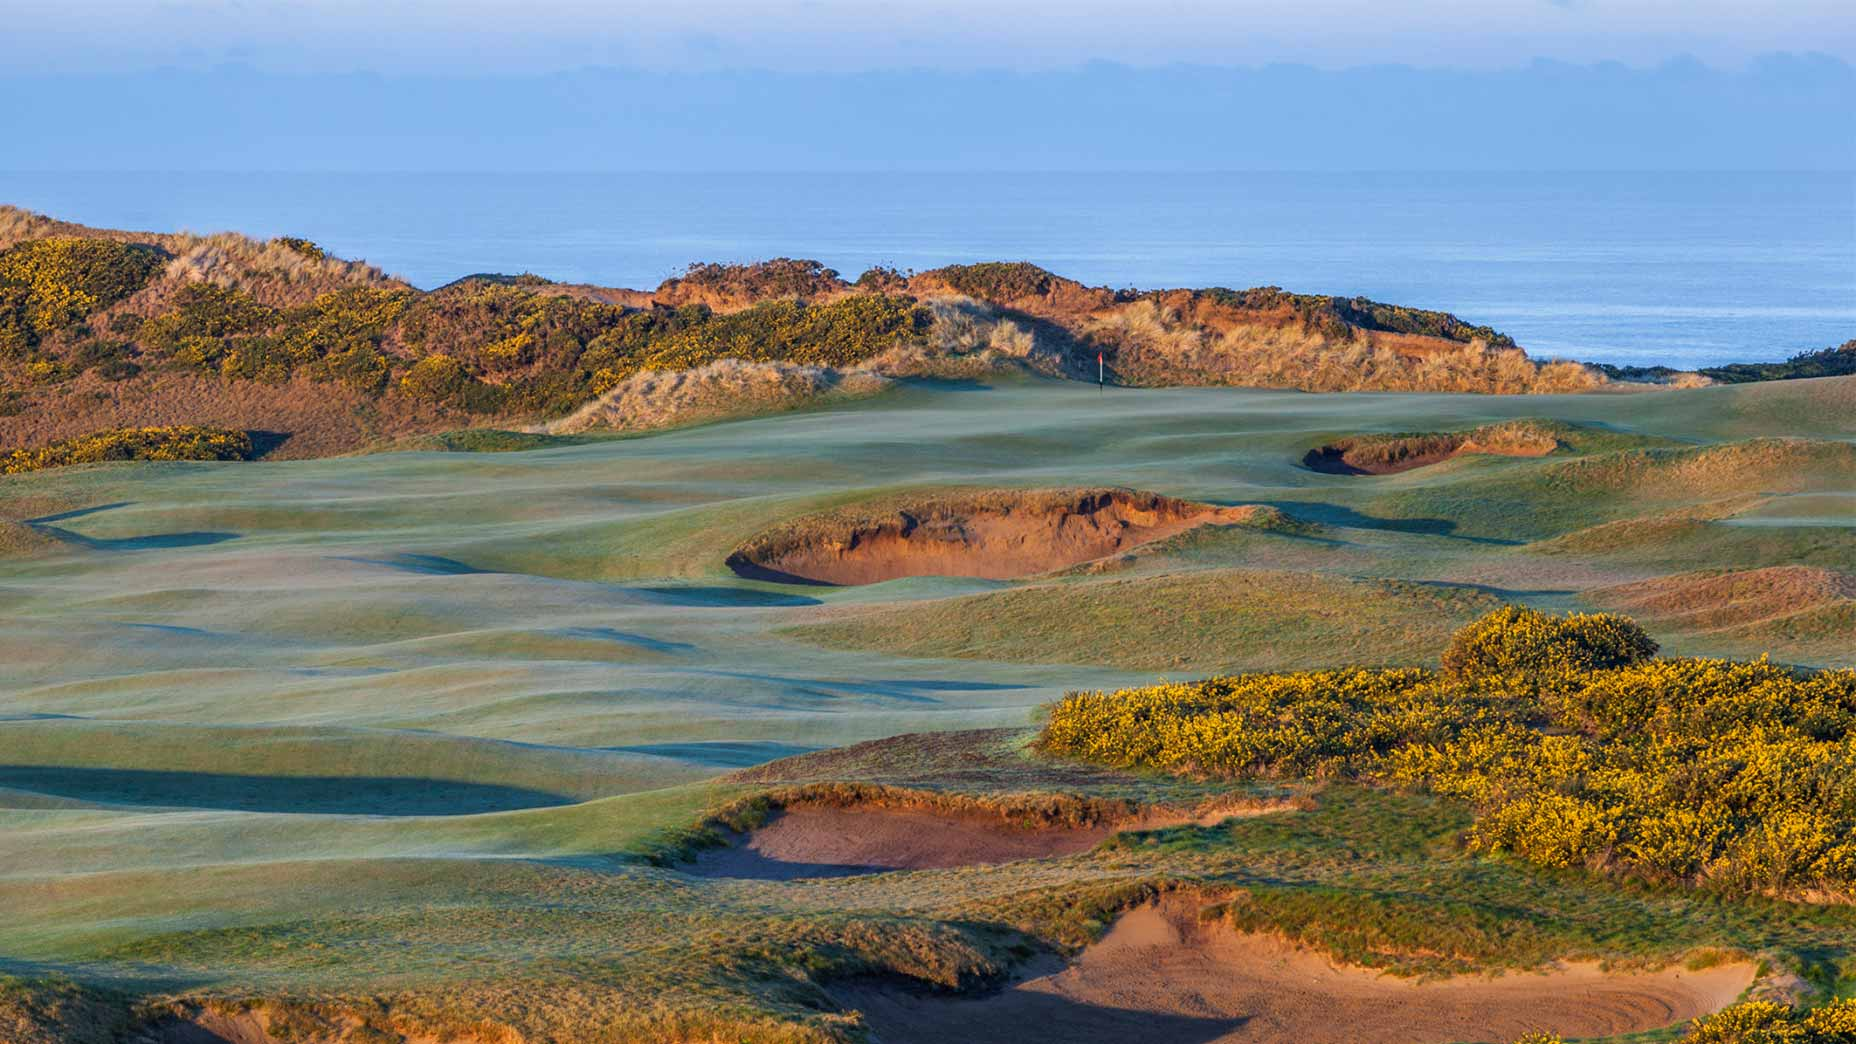 Tom Doak reveals his top 10 overlooked courses in the U.S.